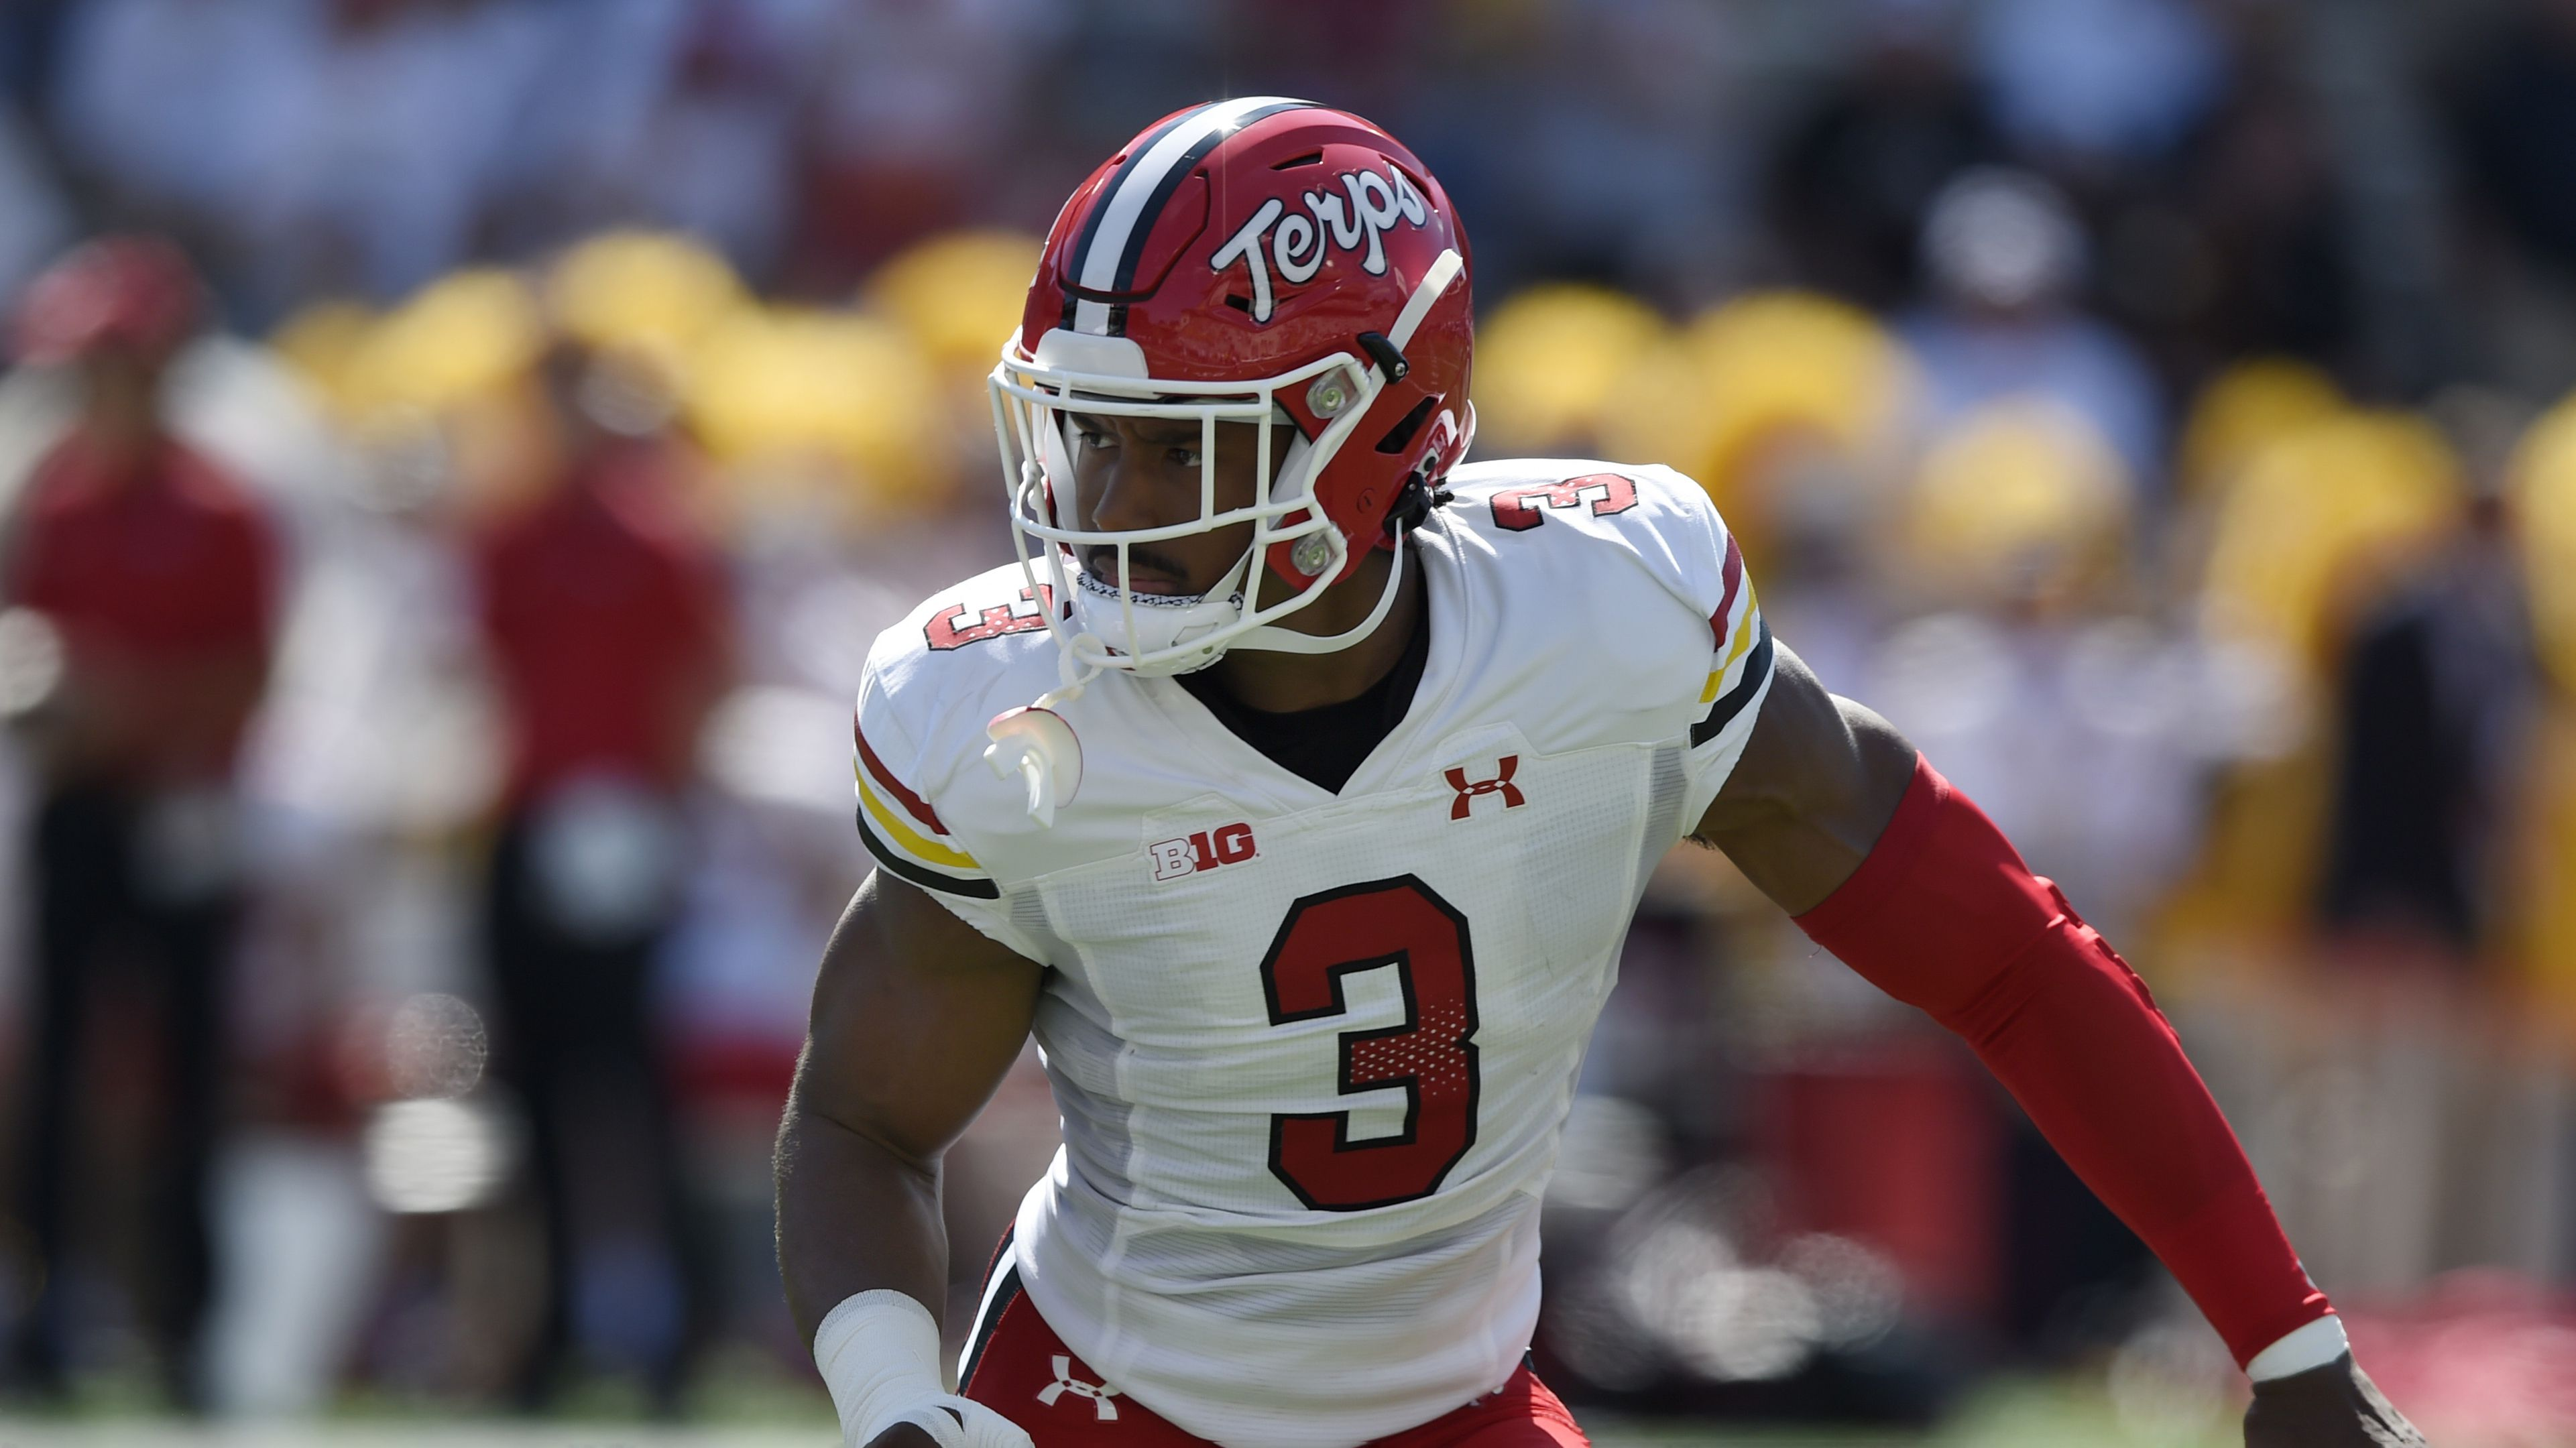 Maryland safety Nick Cross learned football by watching YouTube. Now he's thinking about the NFL.